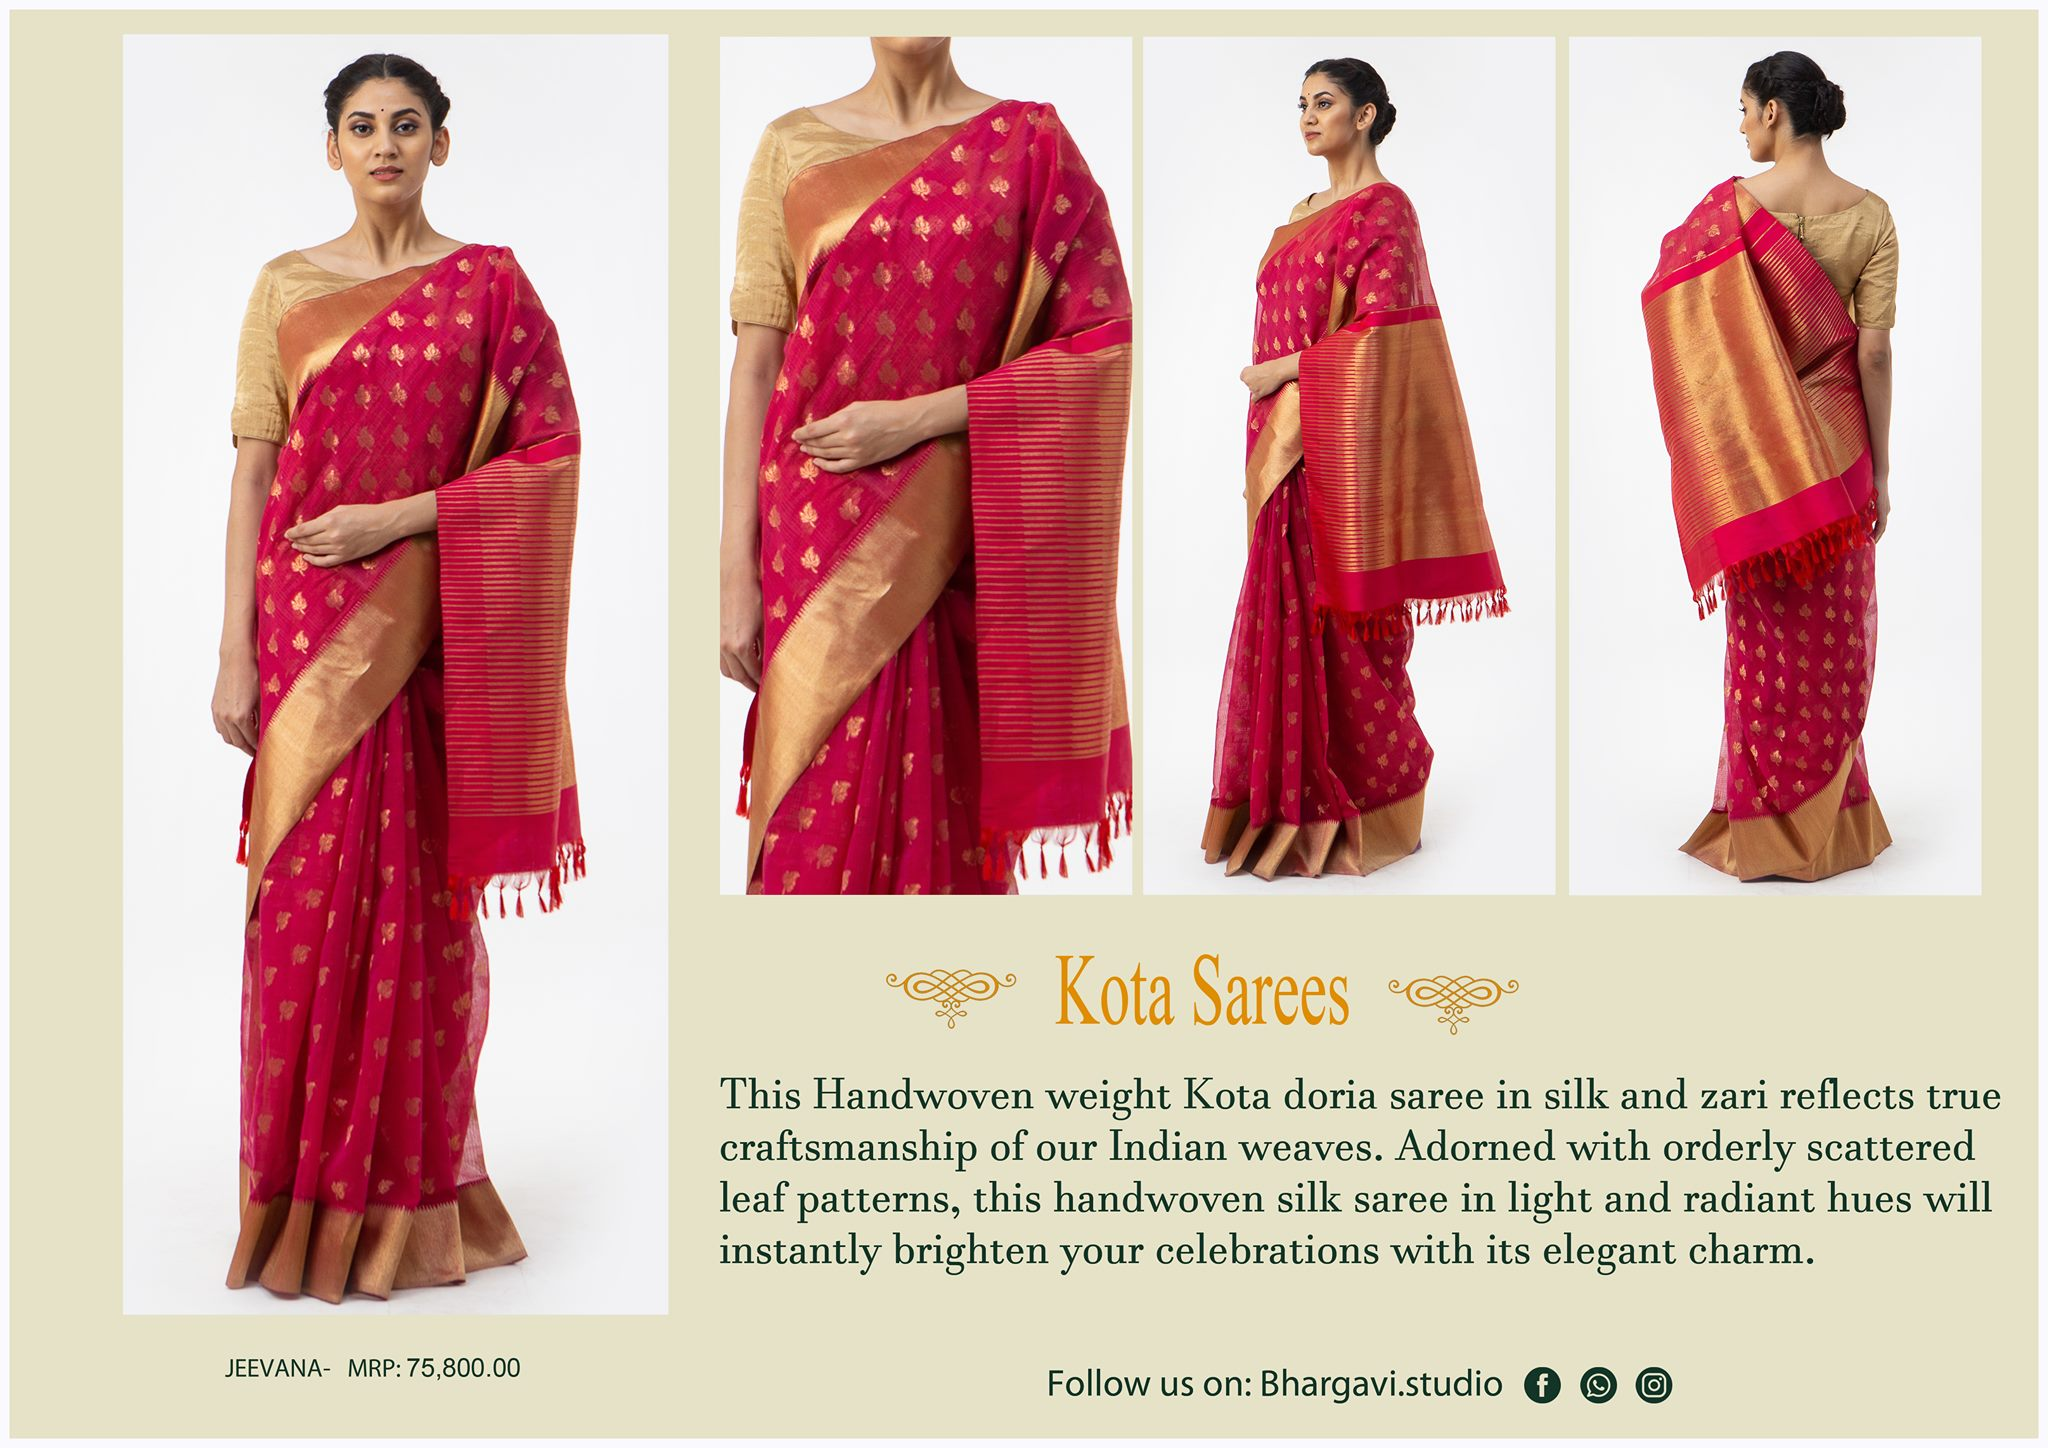 This handwoven light weight  kota doria saree in silk and zari reflects true craftsmanship of our indian waves. Adorned with orderly scattered leaf patterns this handwoven silk saree in light and radiant hues will instantly brighten your celebrations with its elegant charm. 2021-05-29